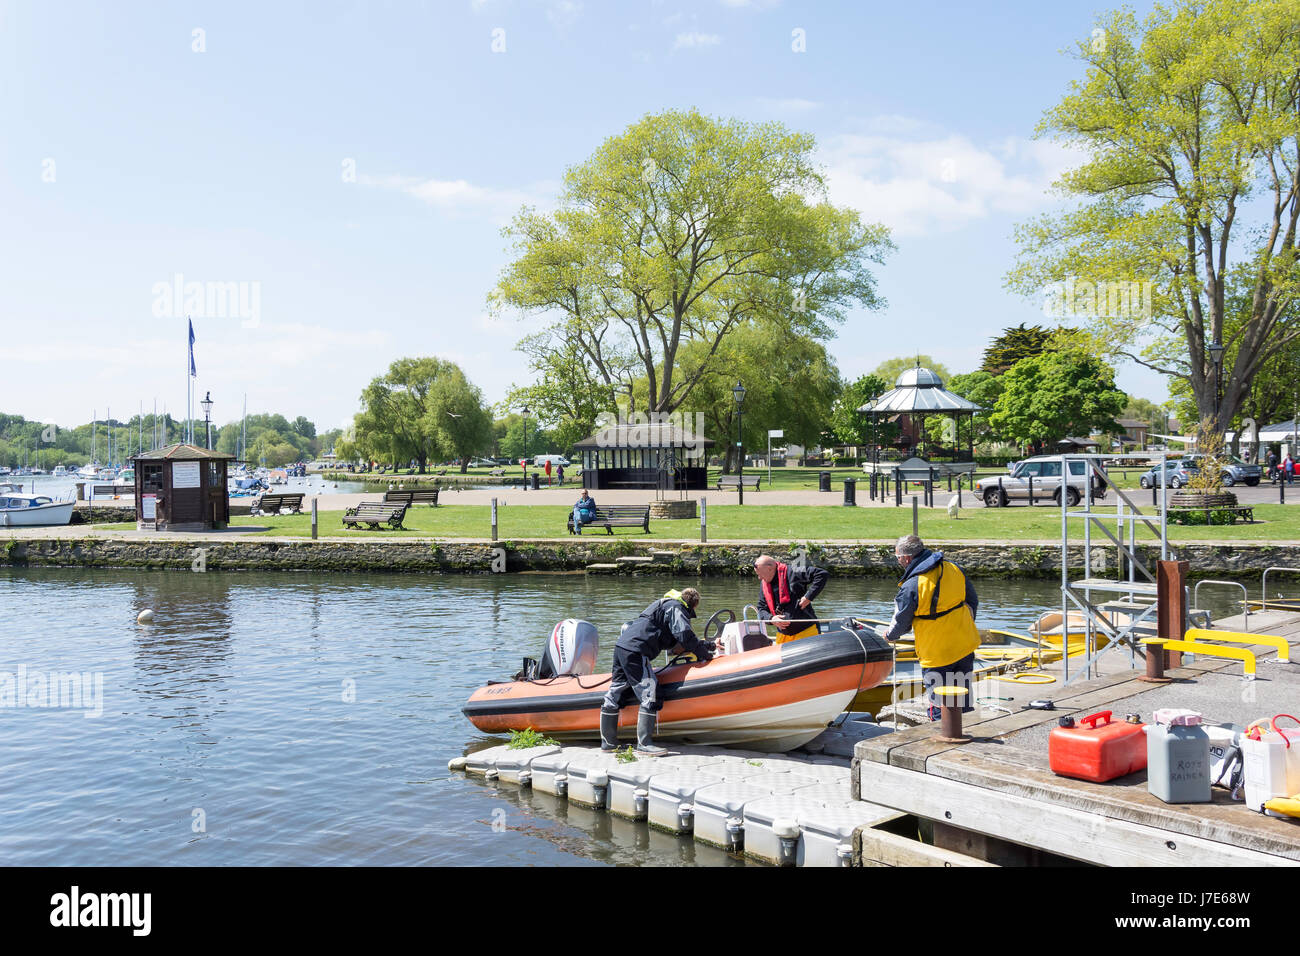 Town Quay and The Quomps, Christchurch Quay, Christchurch, Dorset, England, United Kingdom - Stock Image